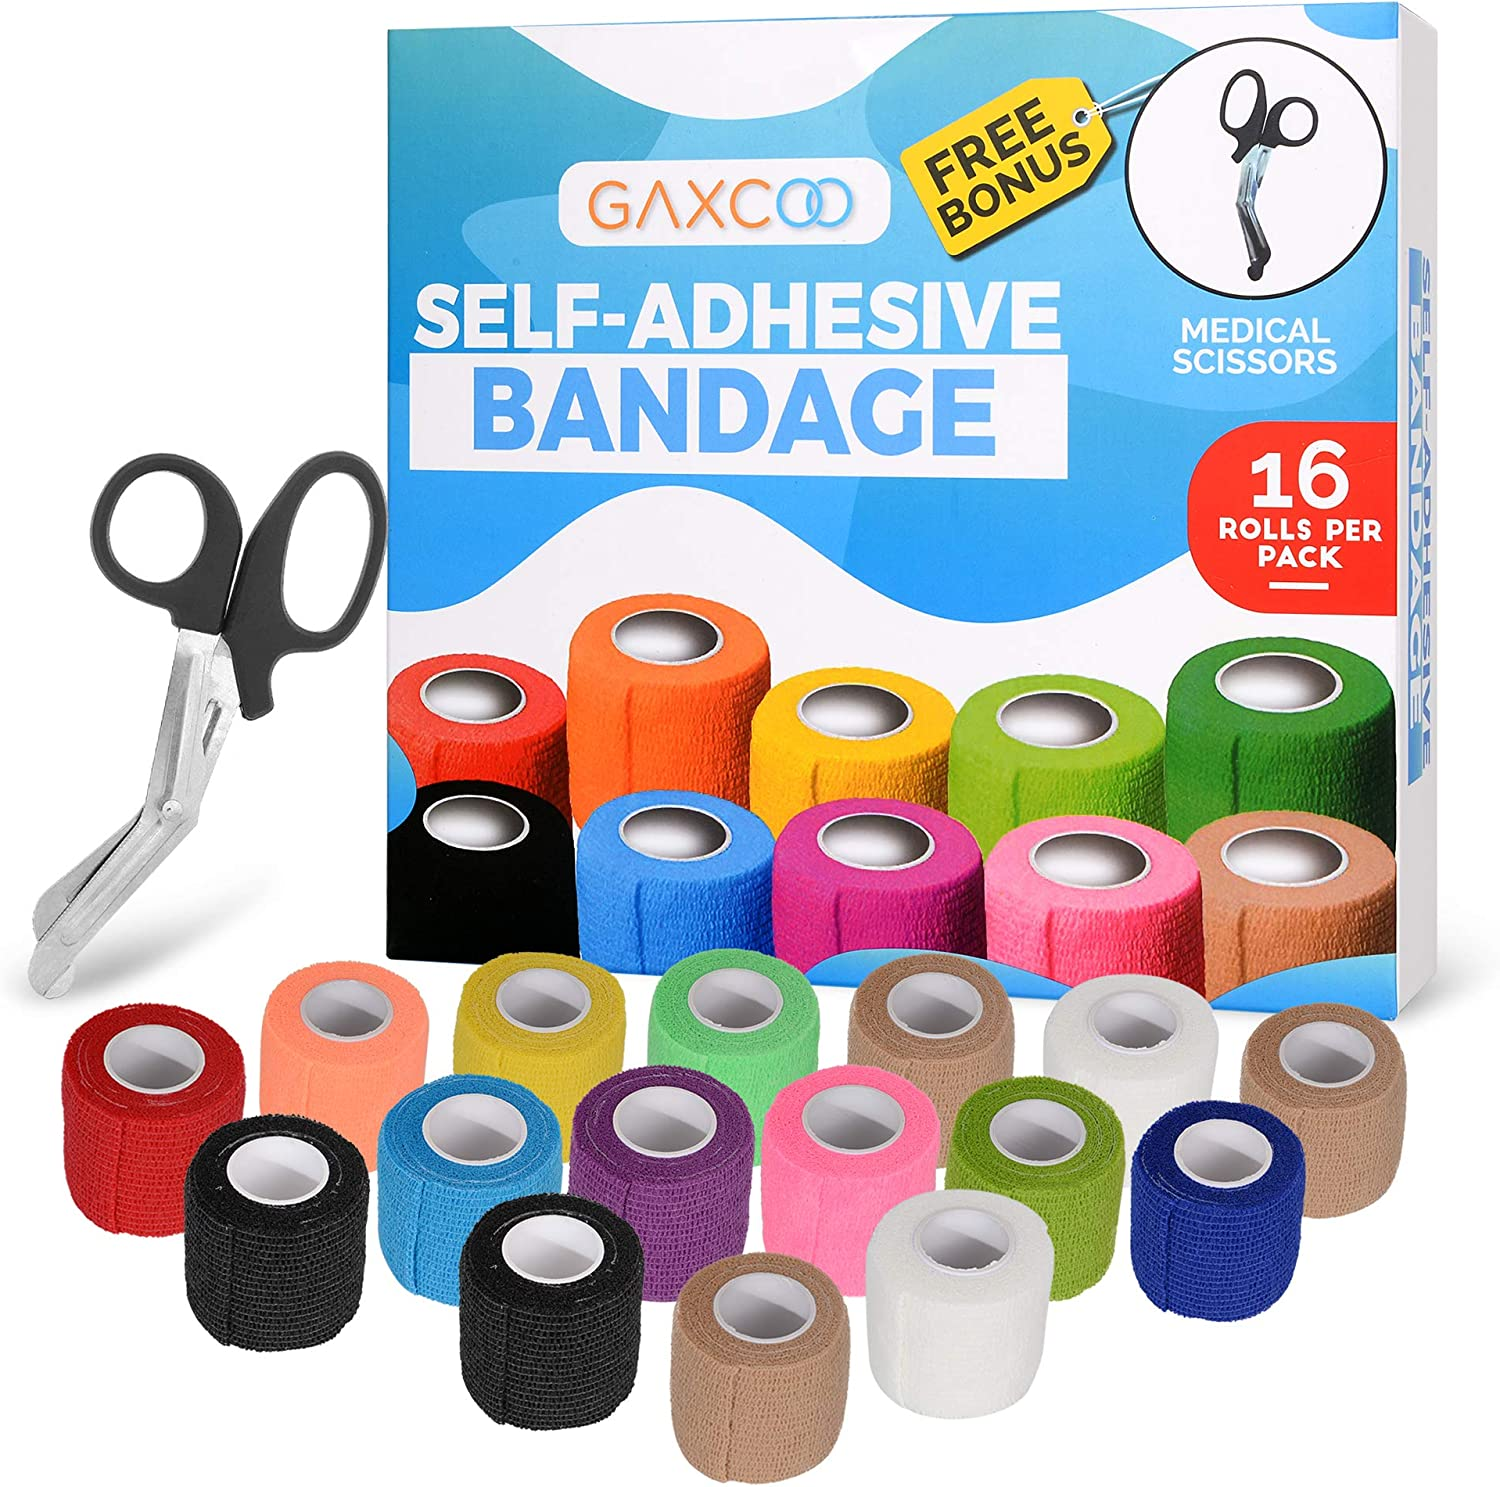 16-Pack Self Adhesive Bandage Flexible 2 x 5 Yards | Self-Adherent Cohesive Tape | Strong Sports Tape for Wrist, Ankle Sprains & Swelling, Pets, Dog Bonus Scissors Included 81VVYv0CcQL